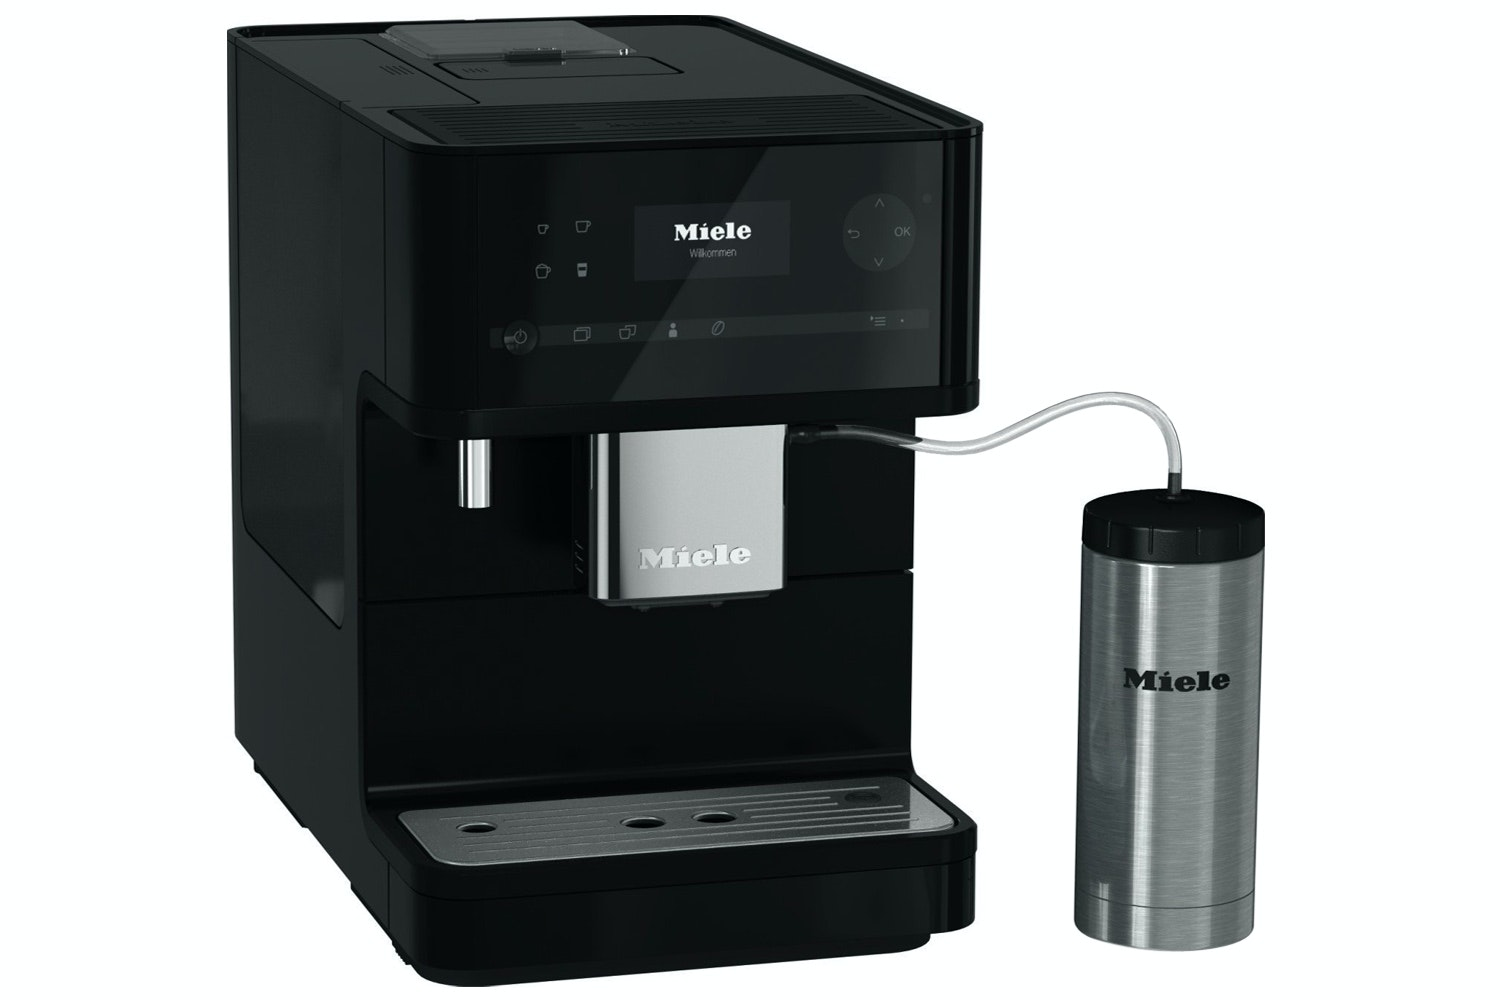 Miele CM 6350  Countertop coffee machine   with OneTouch for Two feature and heated cup rack for perfect coffee